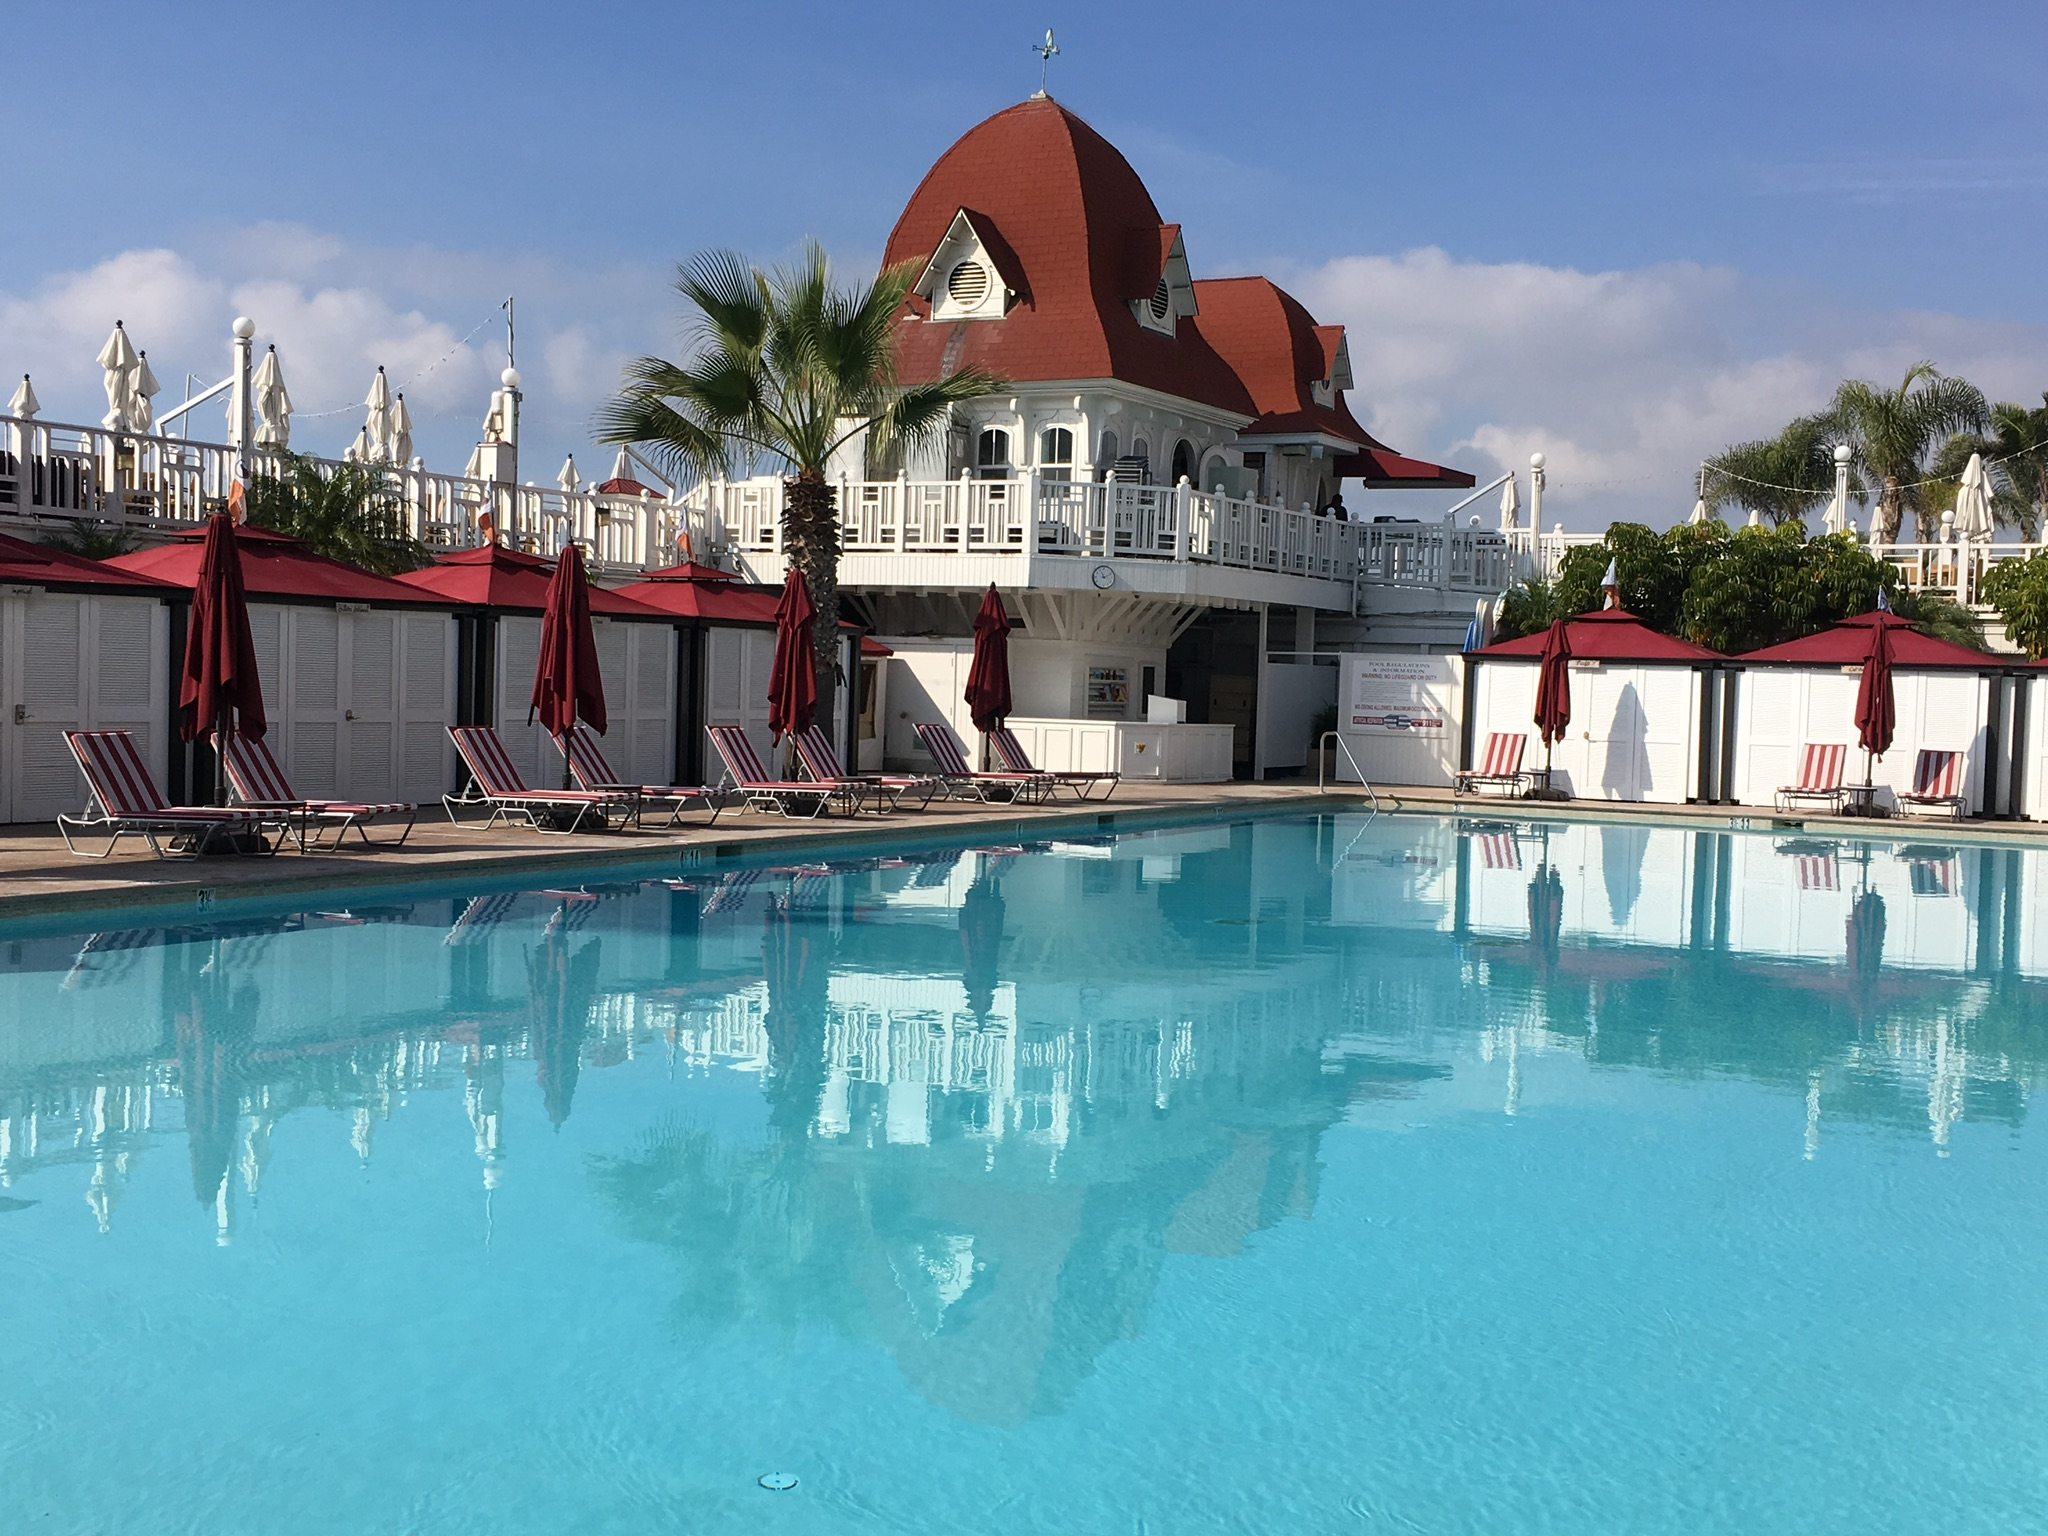 The main pool at the Hotel Del.